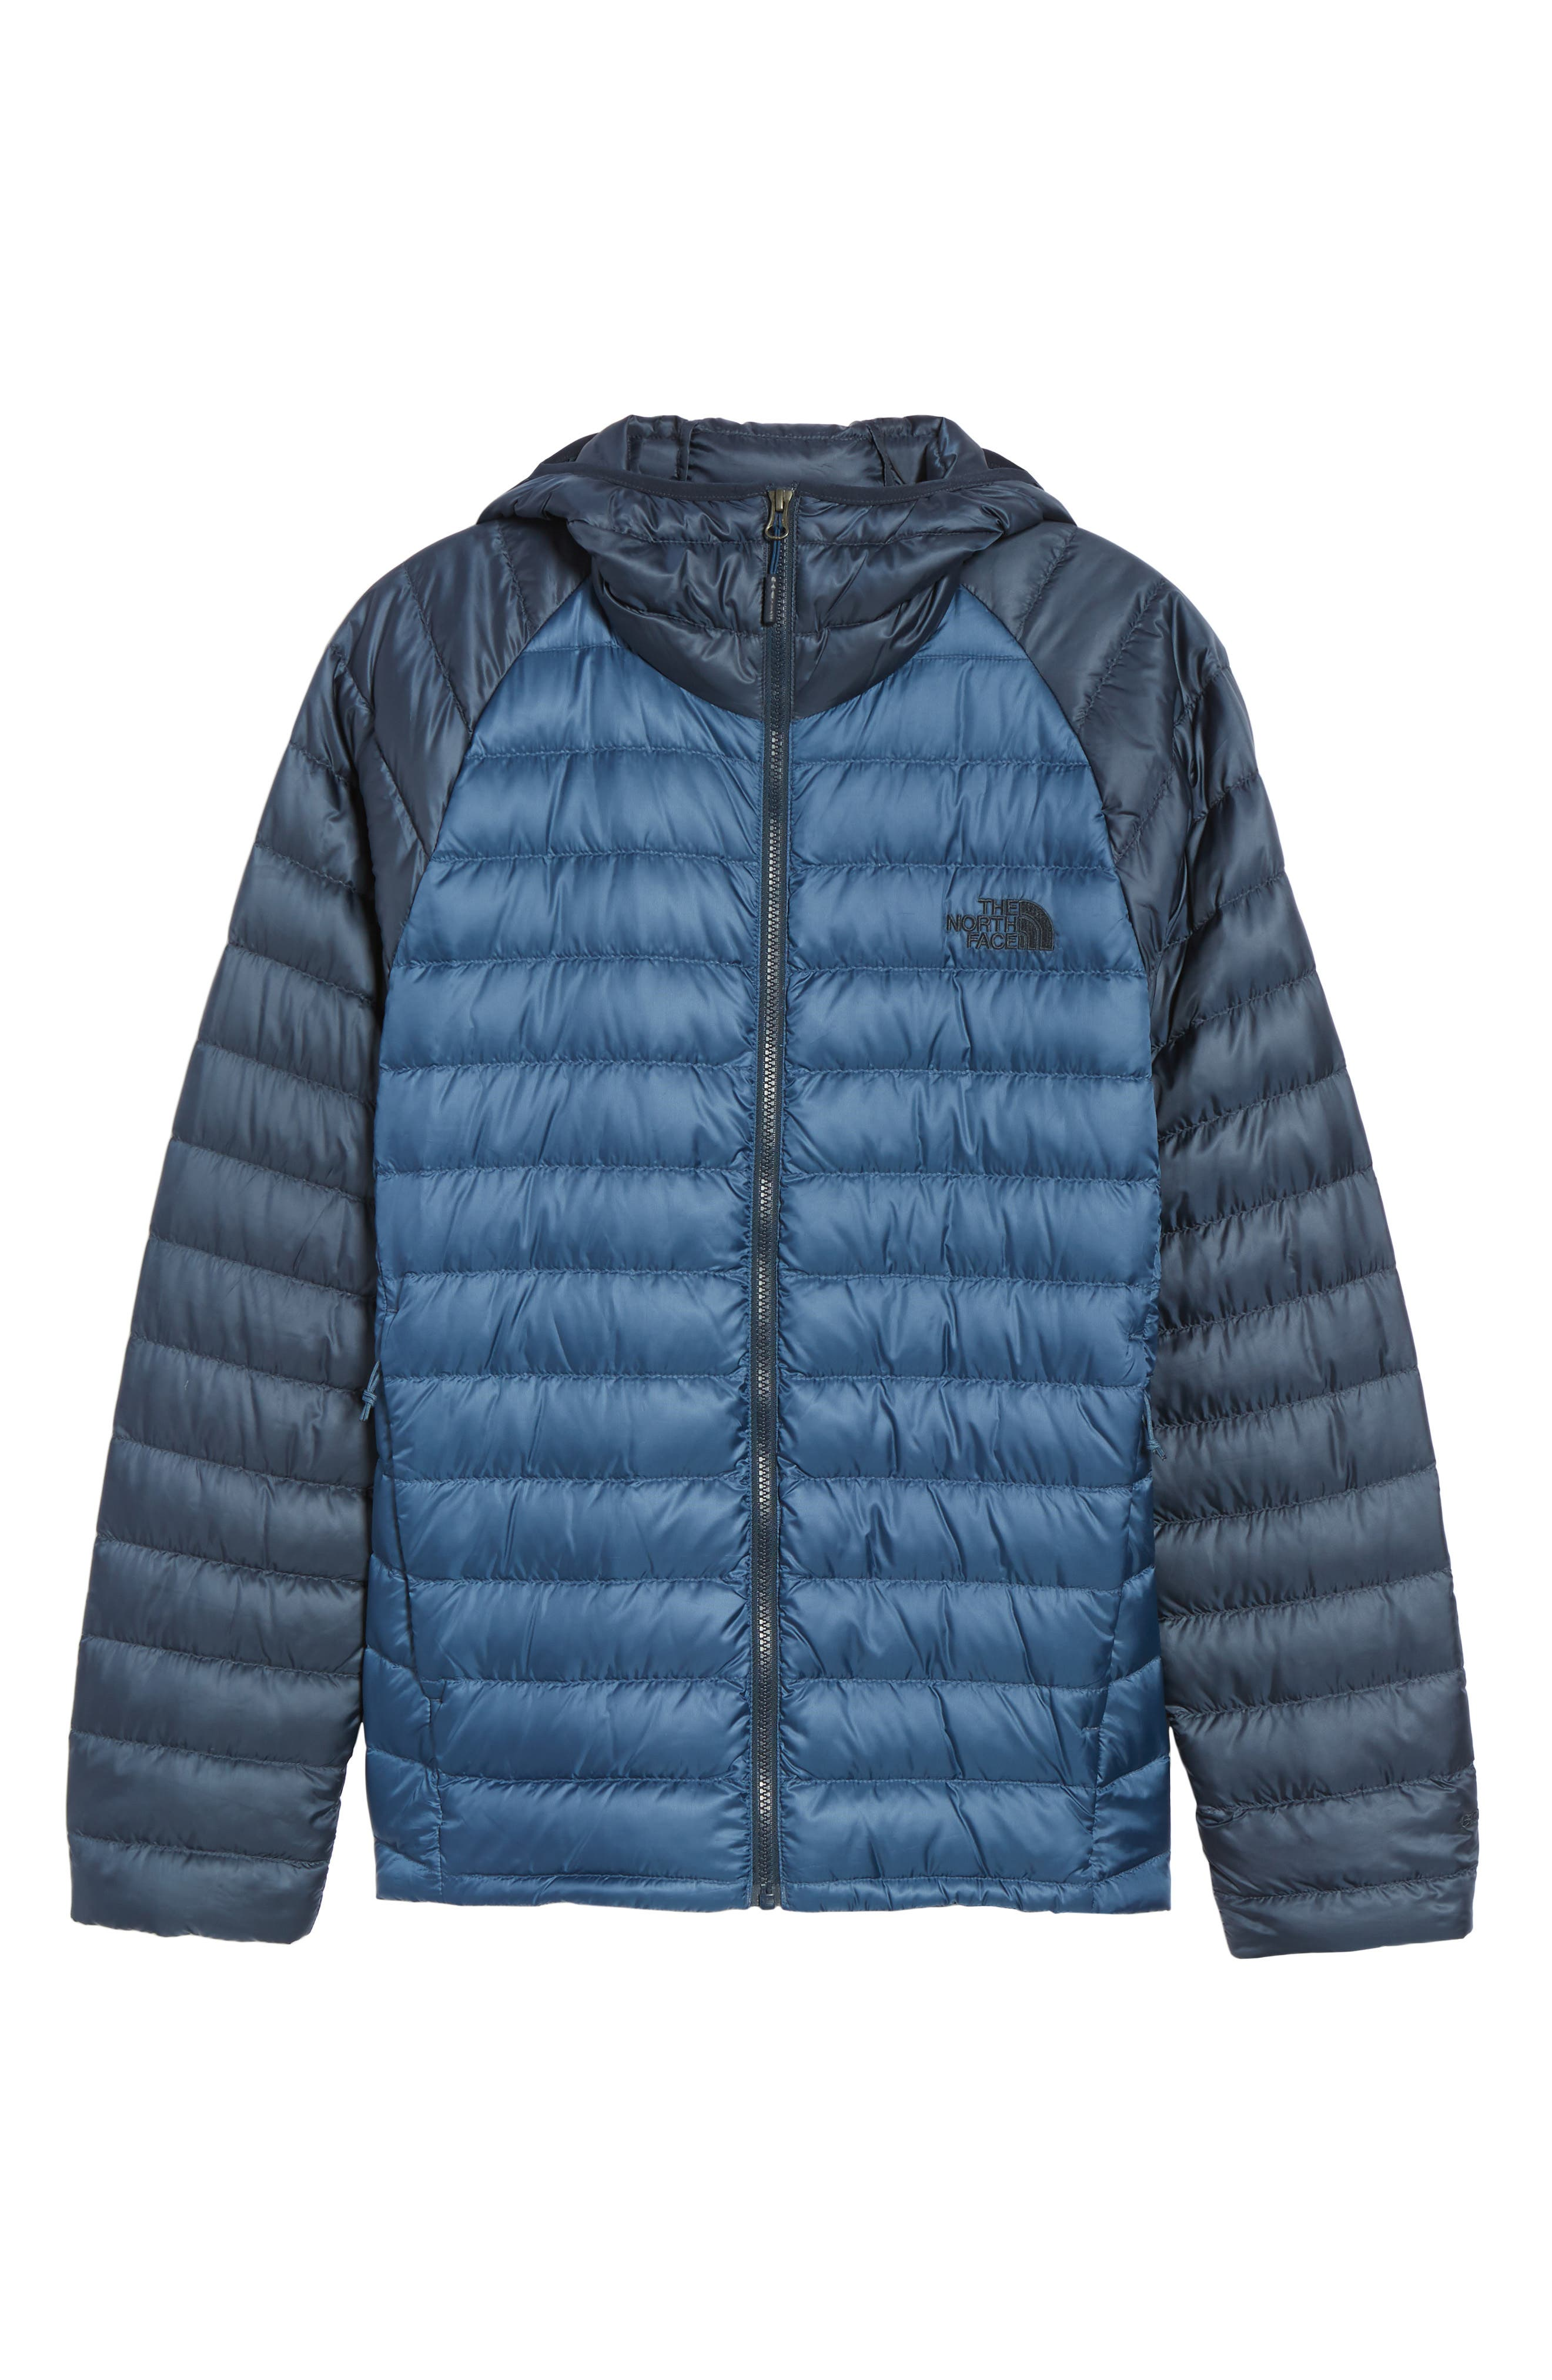 Trevail Water Repellent Packable 800-Fill-Power Down Hooded Jacket,                             Alternate thumbnail 6, color,                             Shady Blue/ Urban Navy